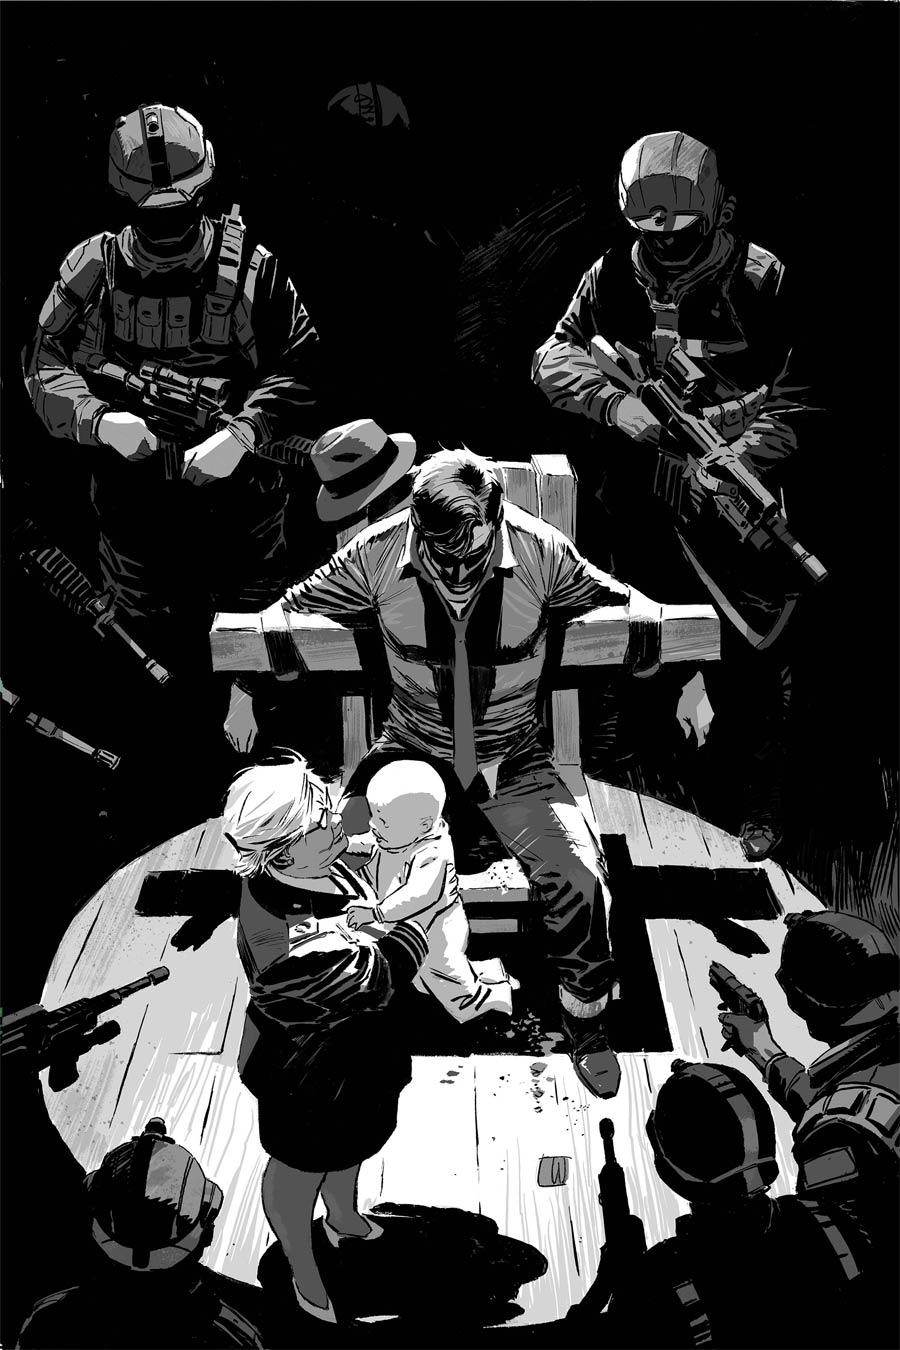 Green Hornet Vol 5 #4 Cover F Limited Edition Lee Weeks Black & White Virgin Premium Variant Cover